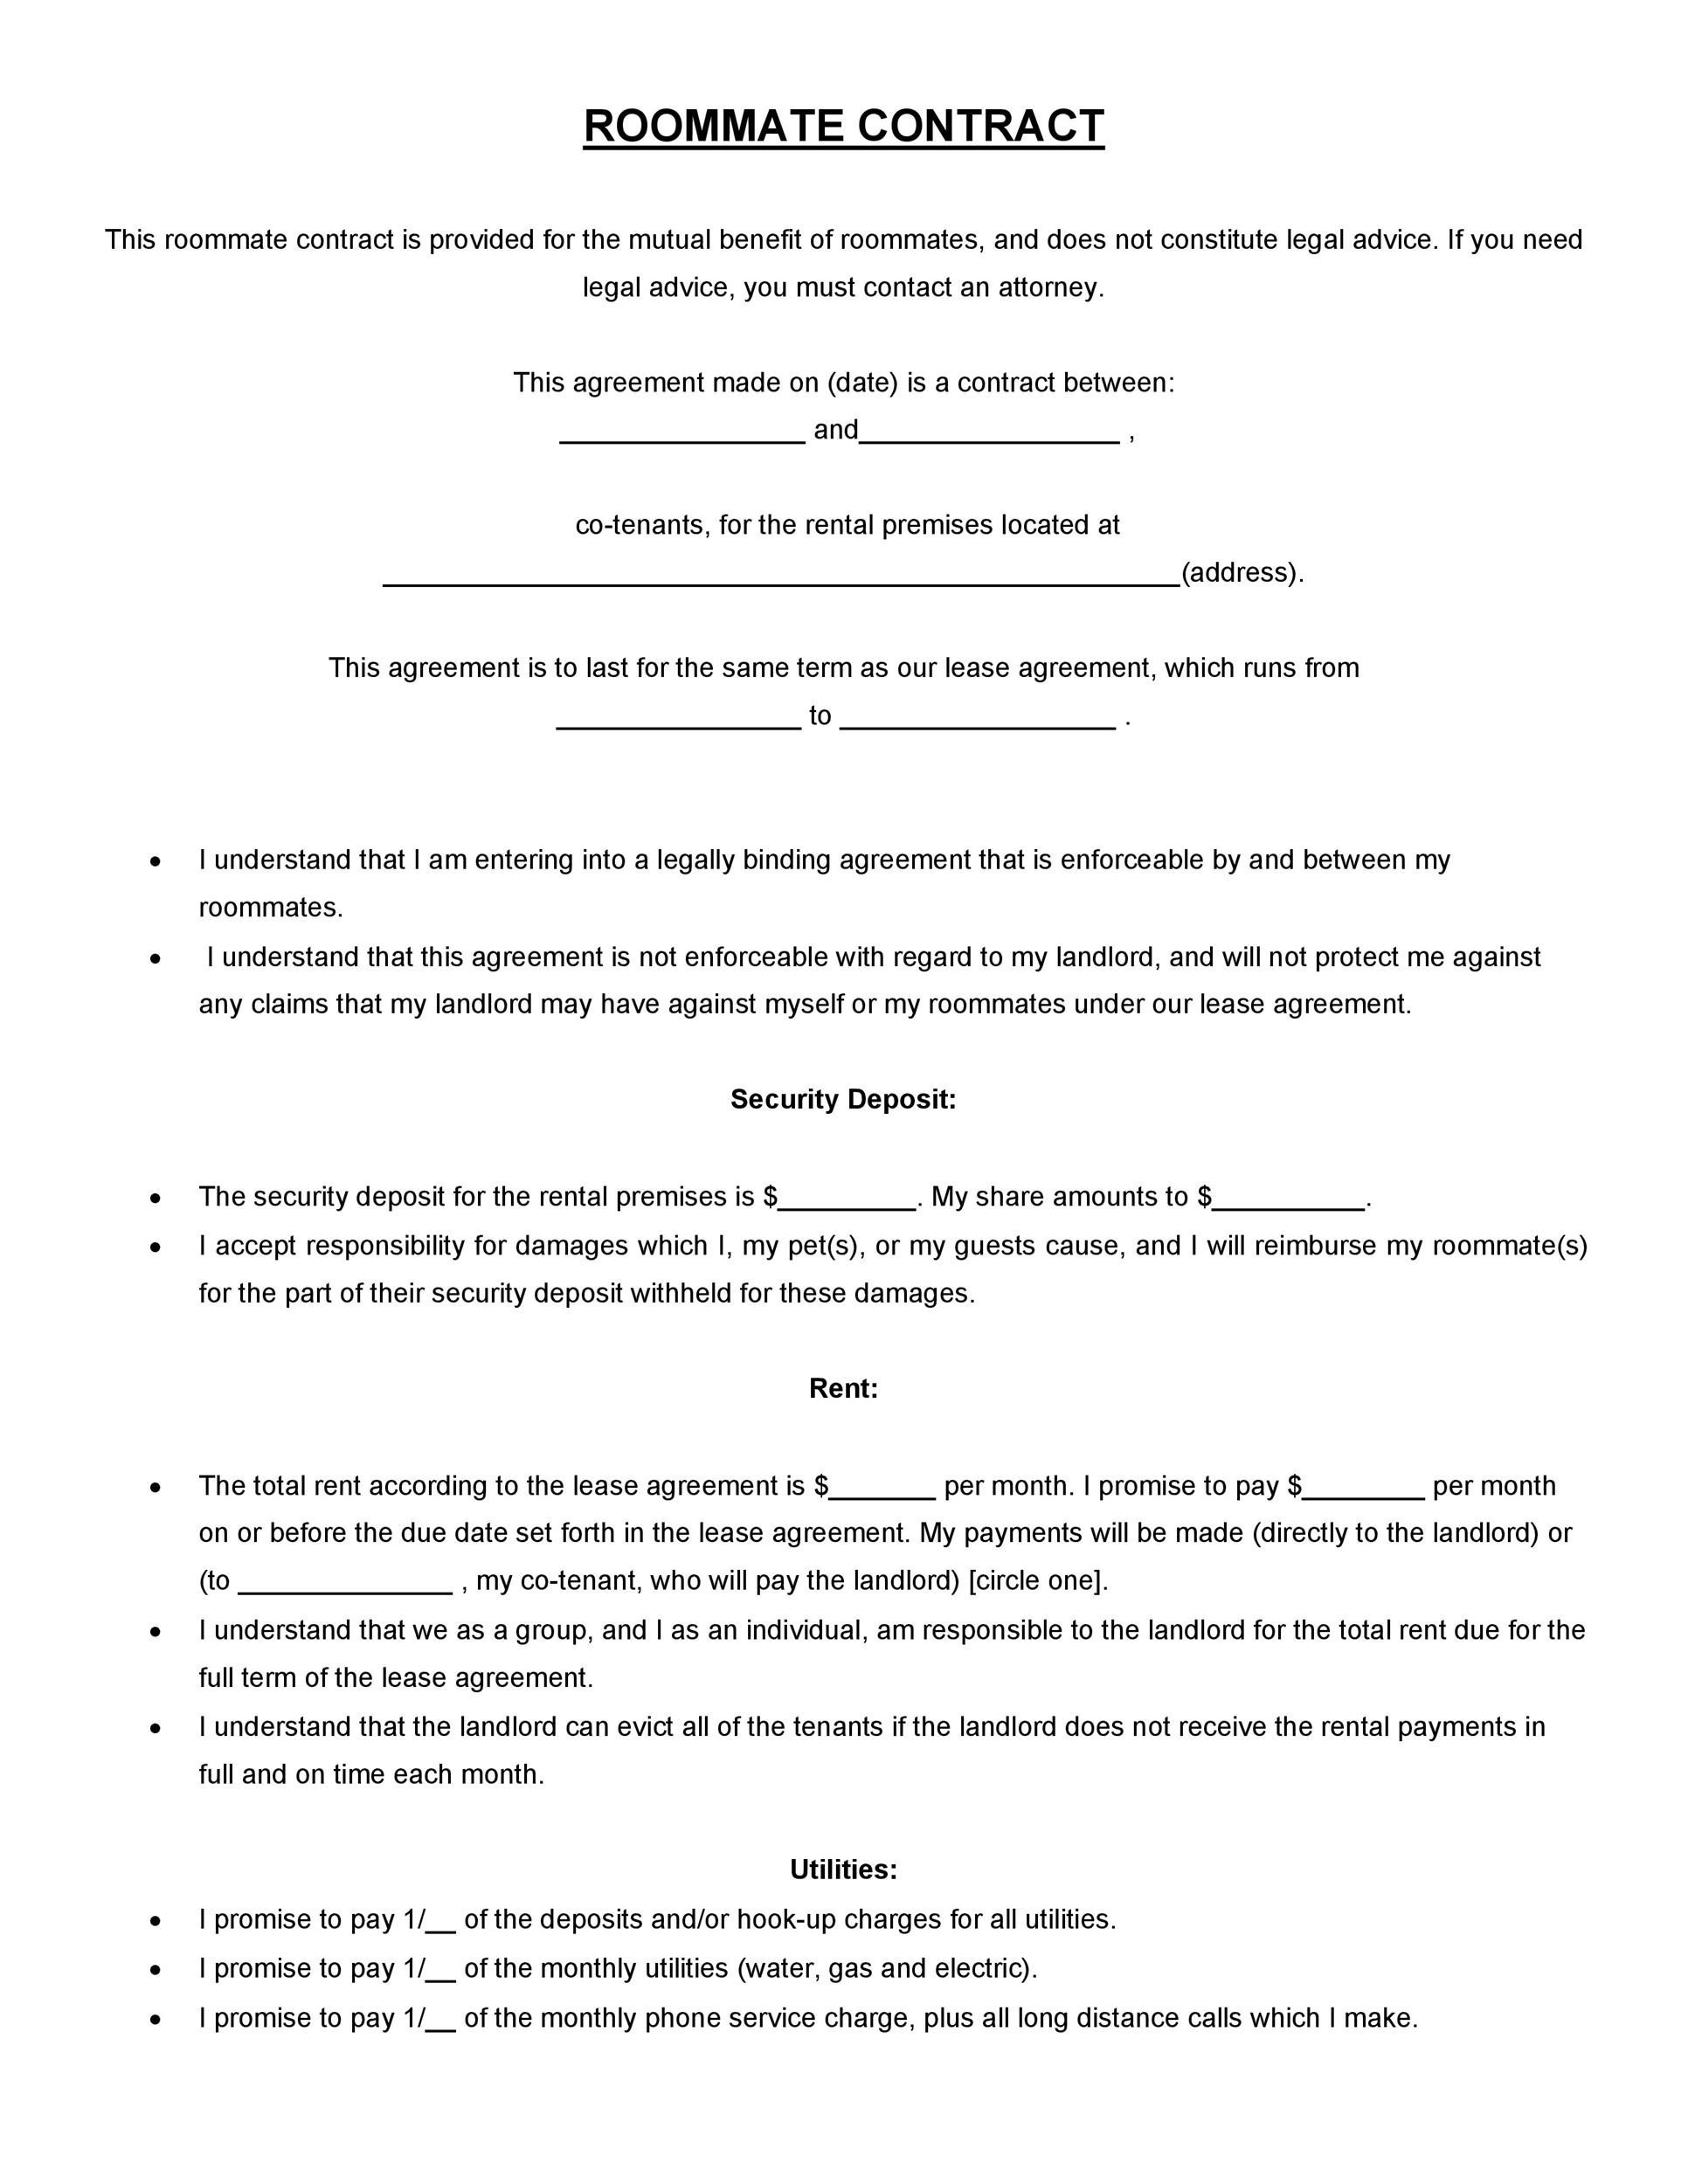 Printable Roommate Agreement Template 29  Legal Promise To Pay Document